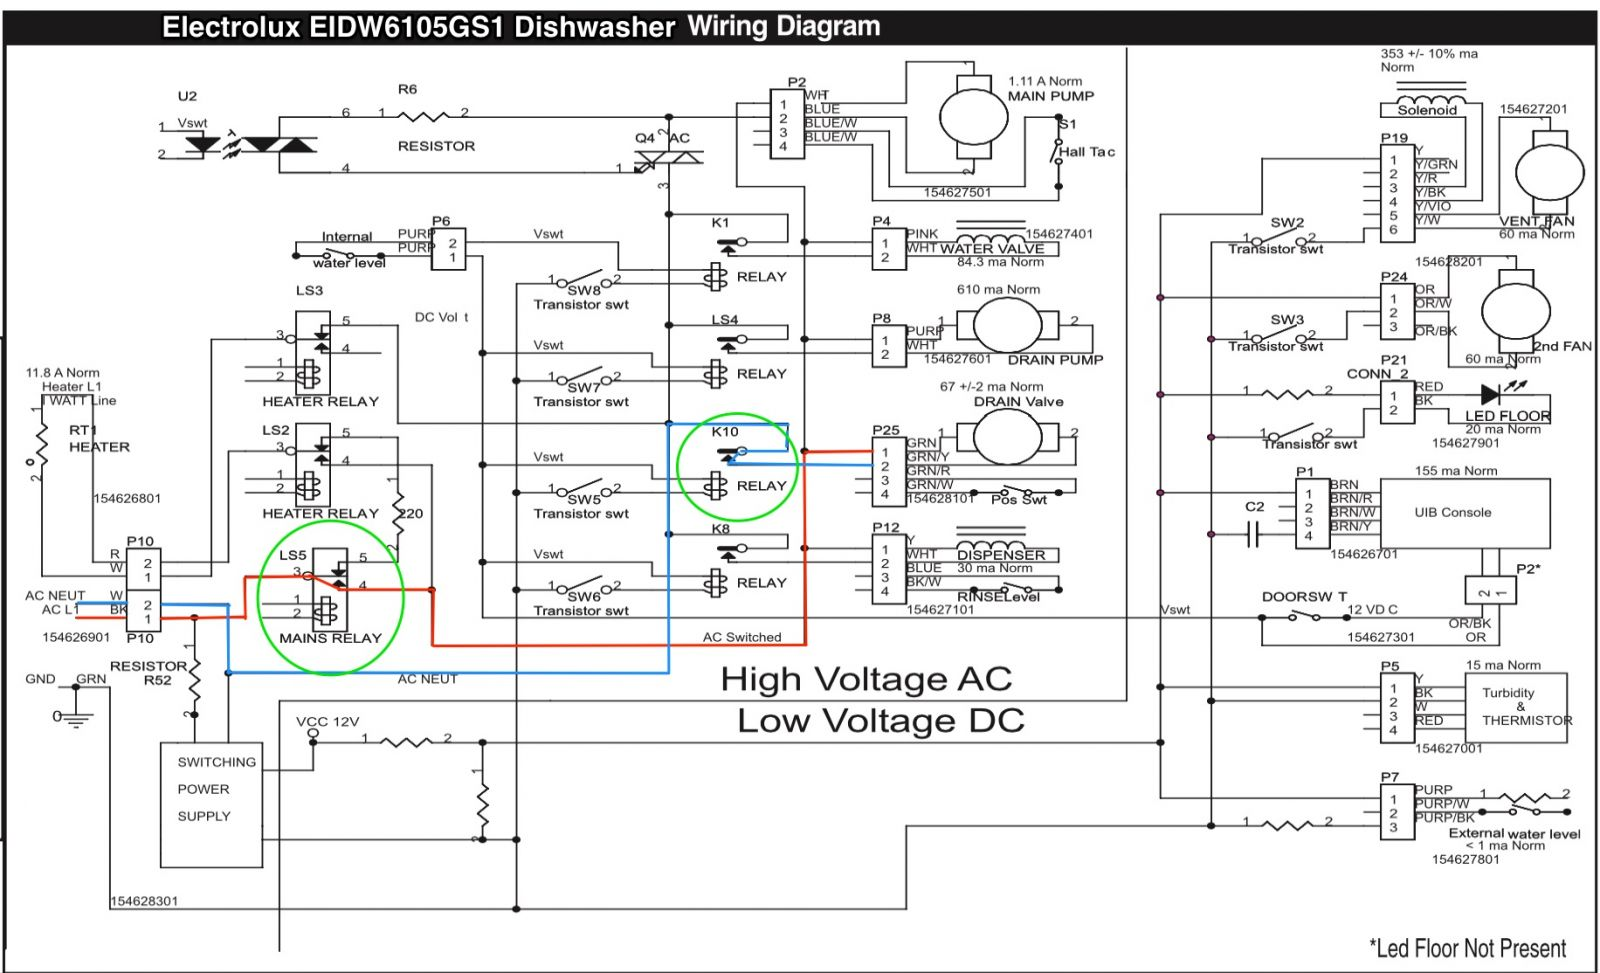 gallery_4_7_21756 electrolux eidw6105gs1 dishwasher wiring diagram the bosch dishwasher wiring schematics at bayanpartner.co